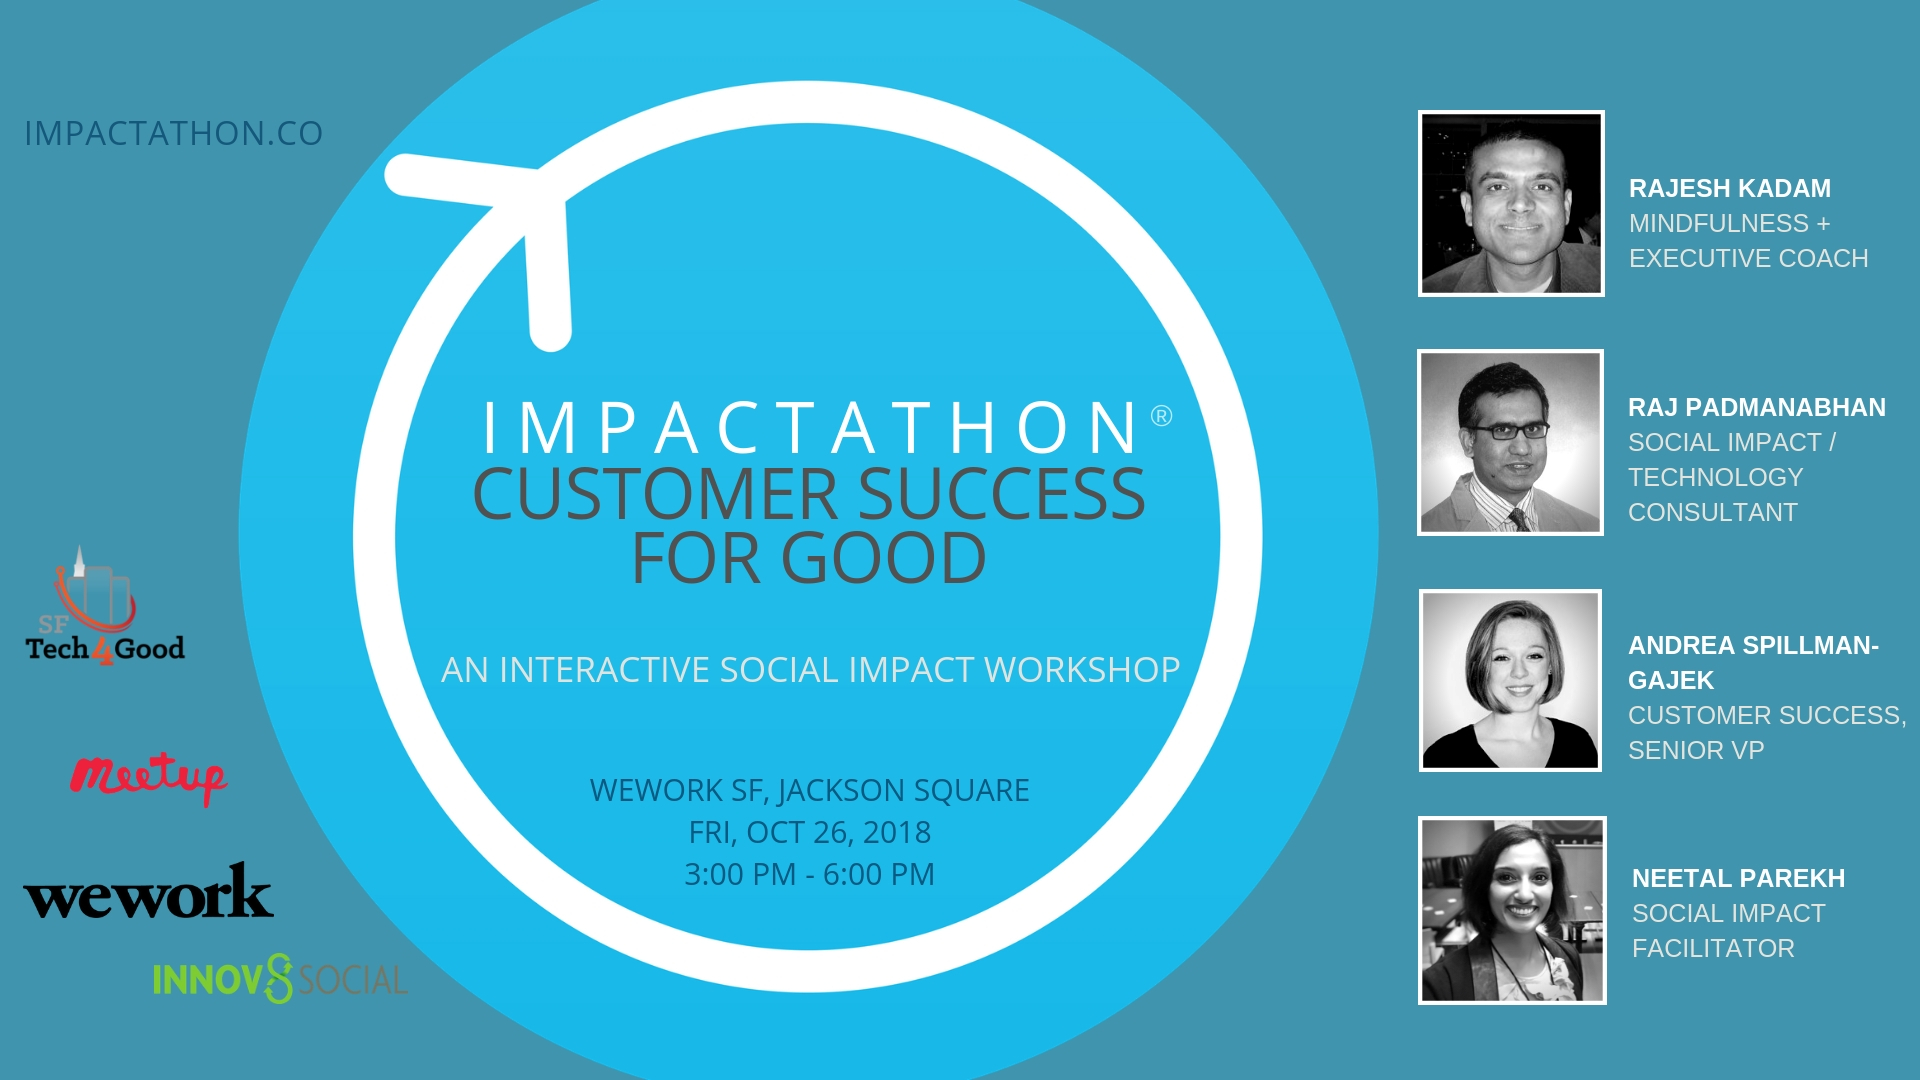 Impactathon® Customer Success for Good